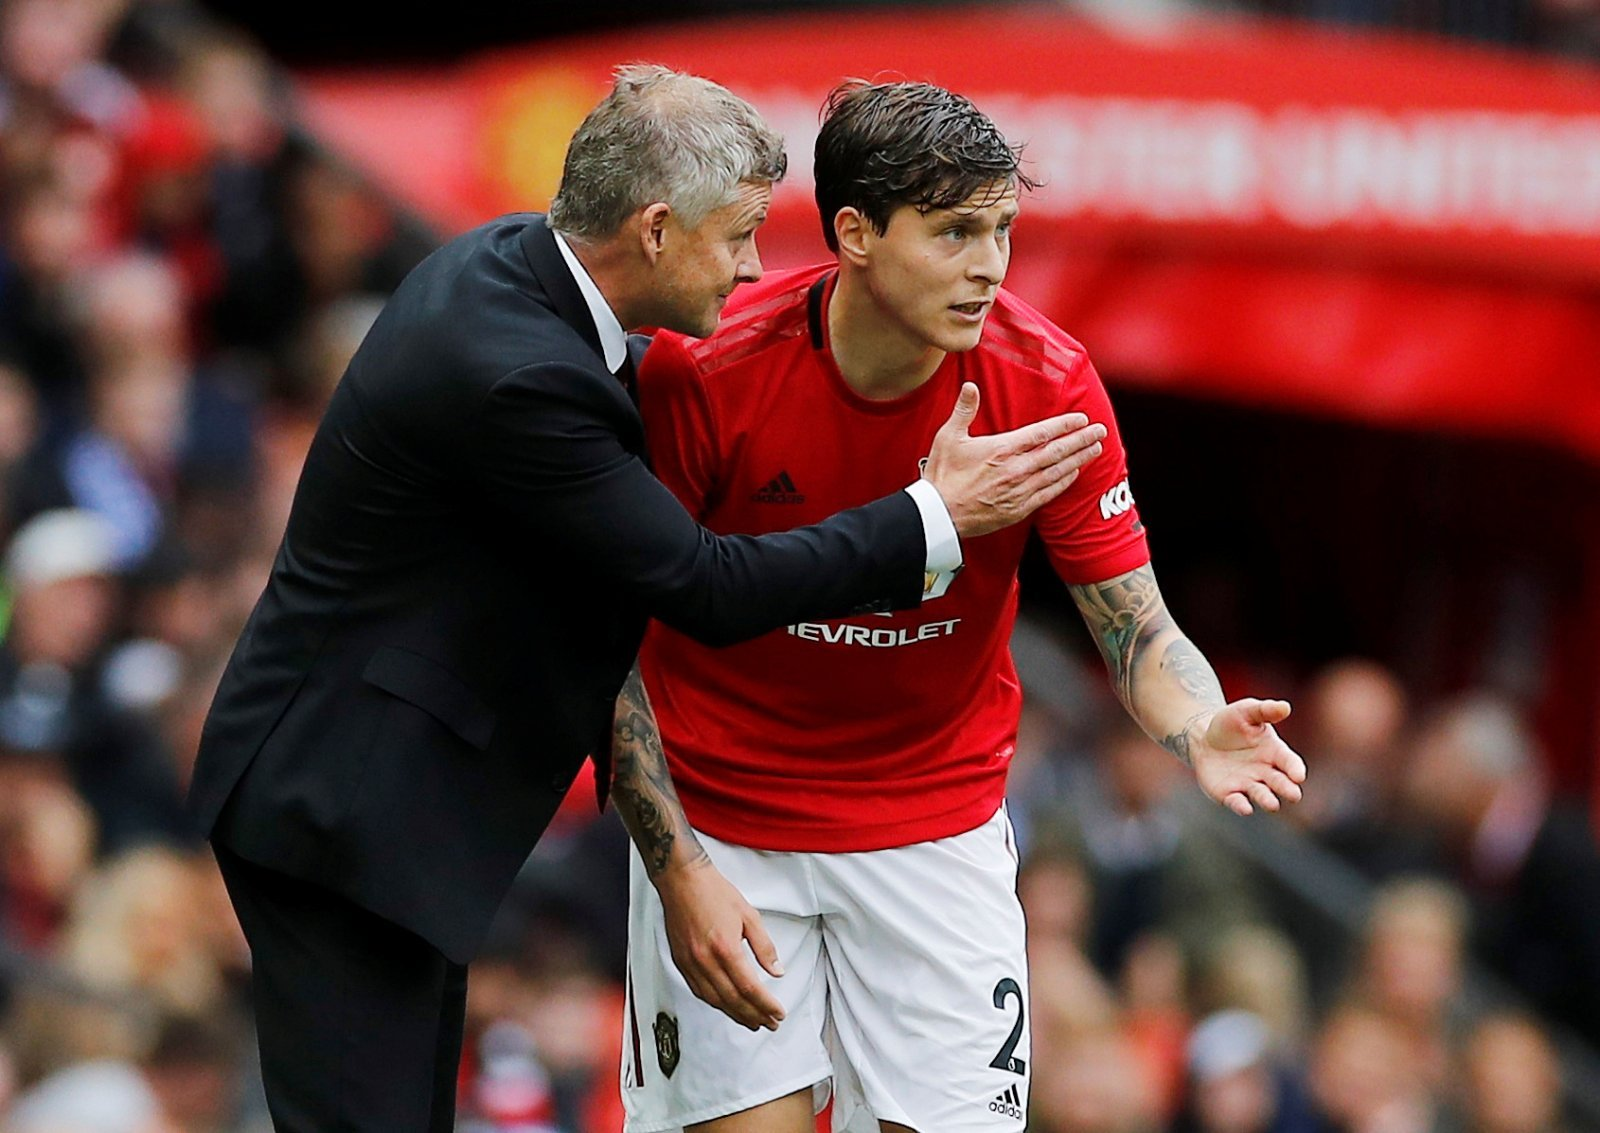 Unsung Hero: Manchester United's Victor Lindelof put in quiet-but-stellar performance